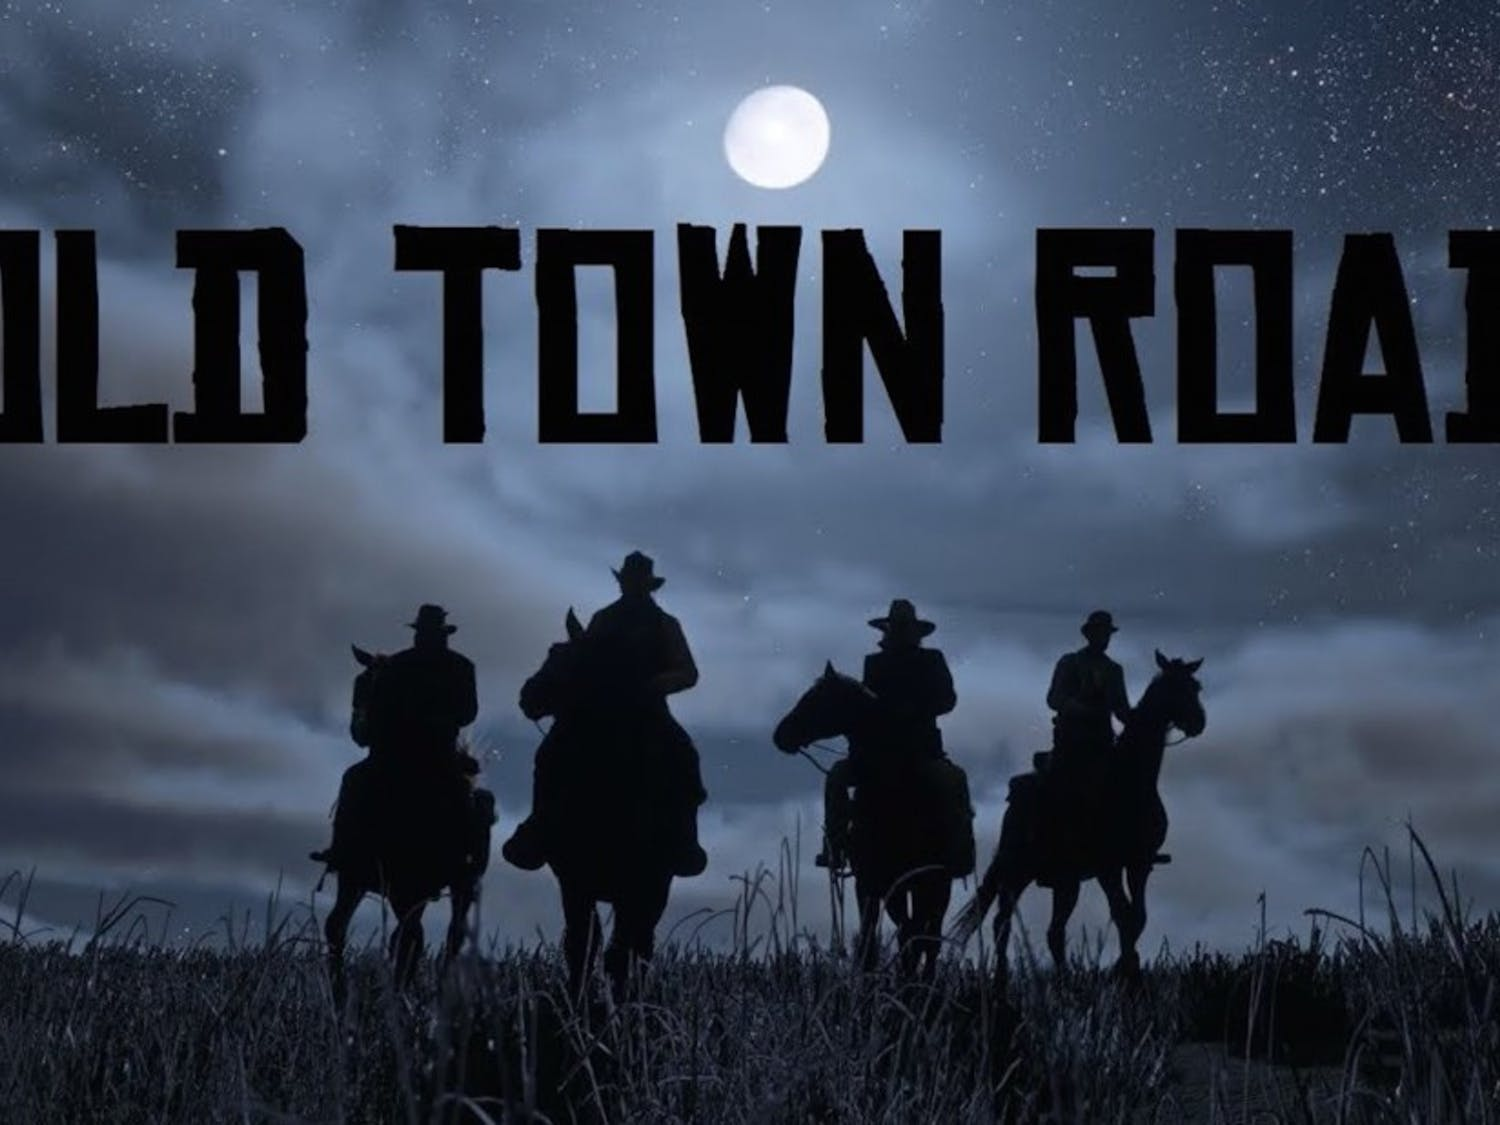 """Lil Nas X released """"Out Town Road"""" Dec. 8, but the song was disqualified from the Hot Country Songs chart last month."""